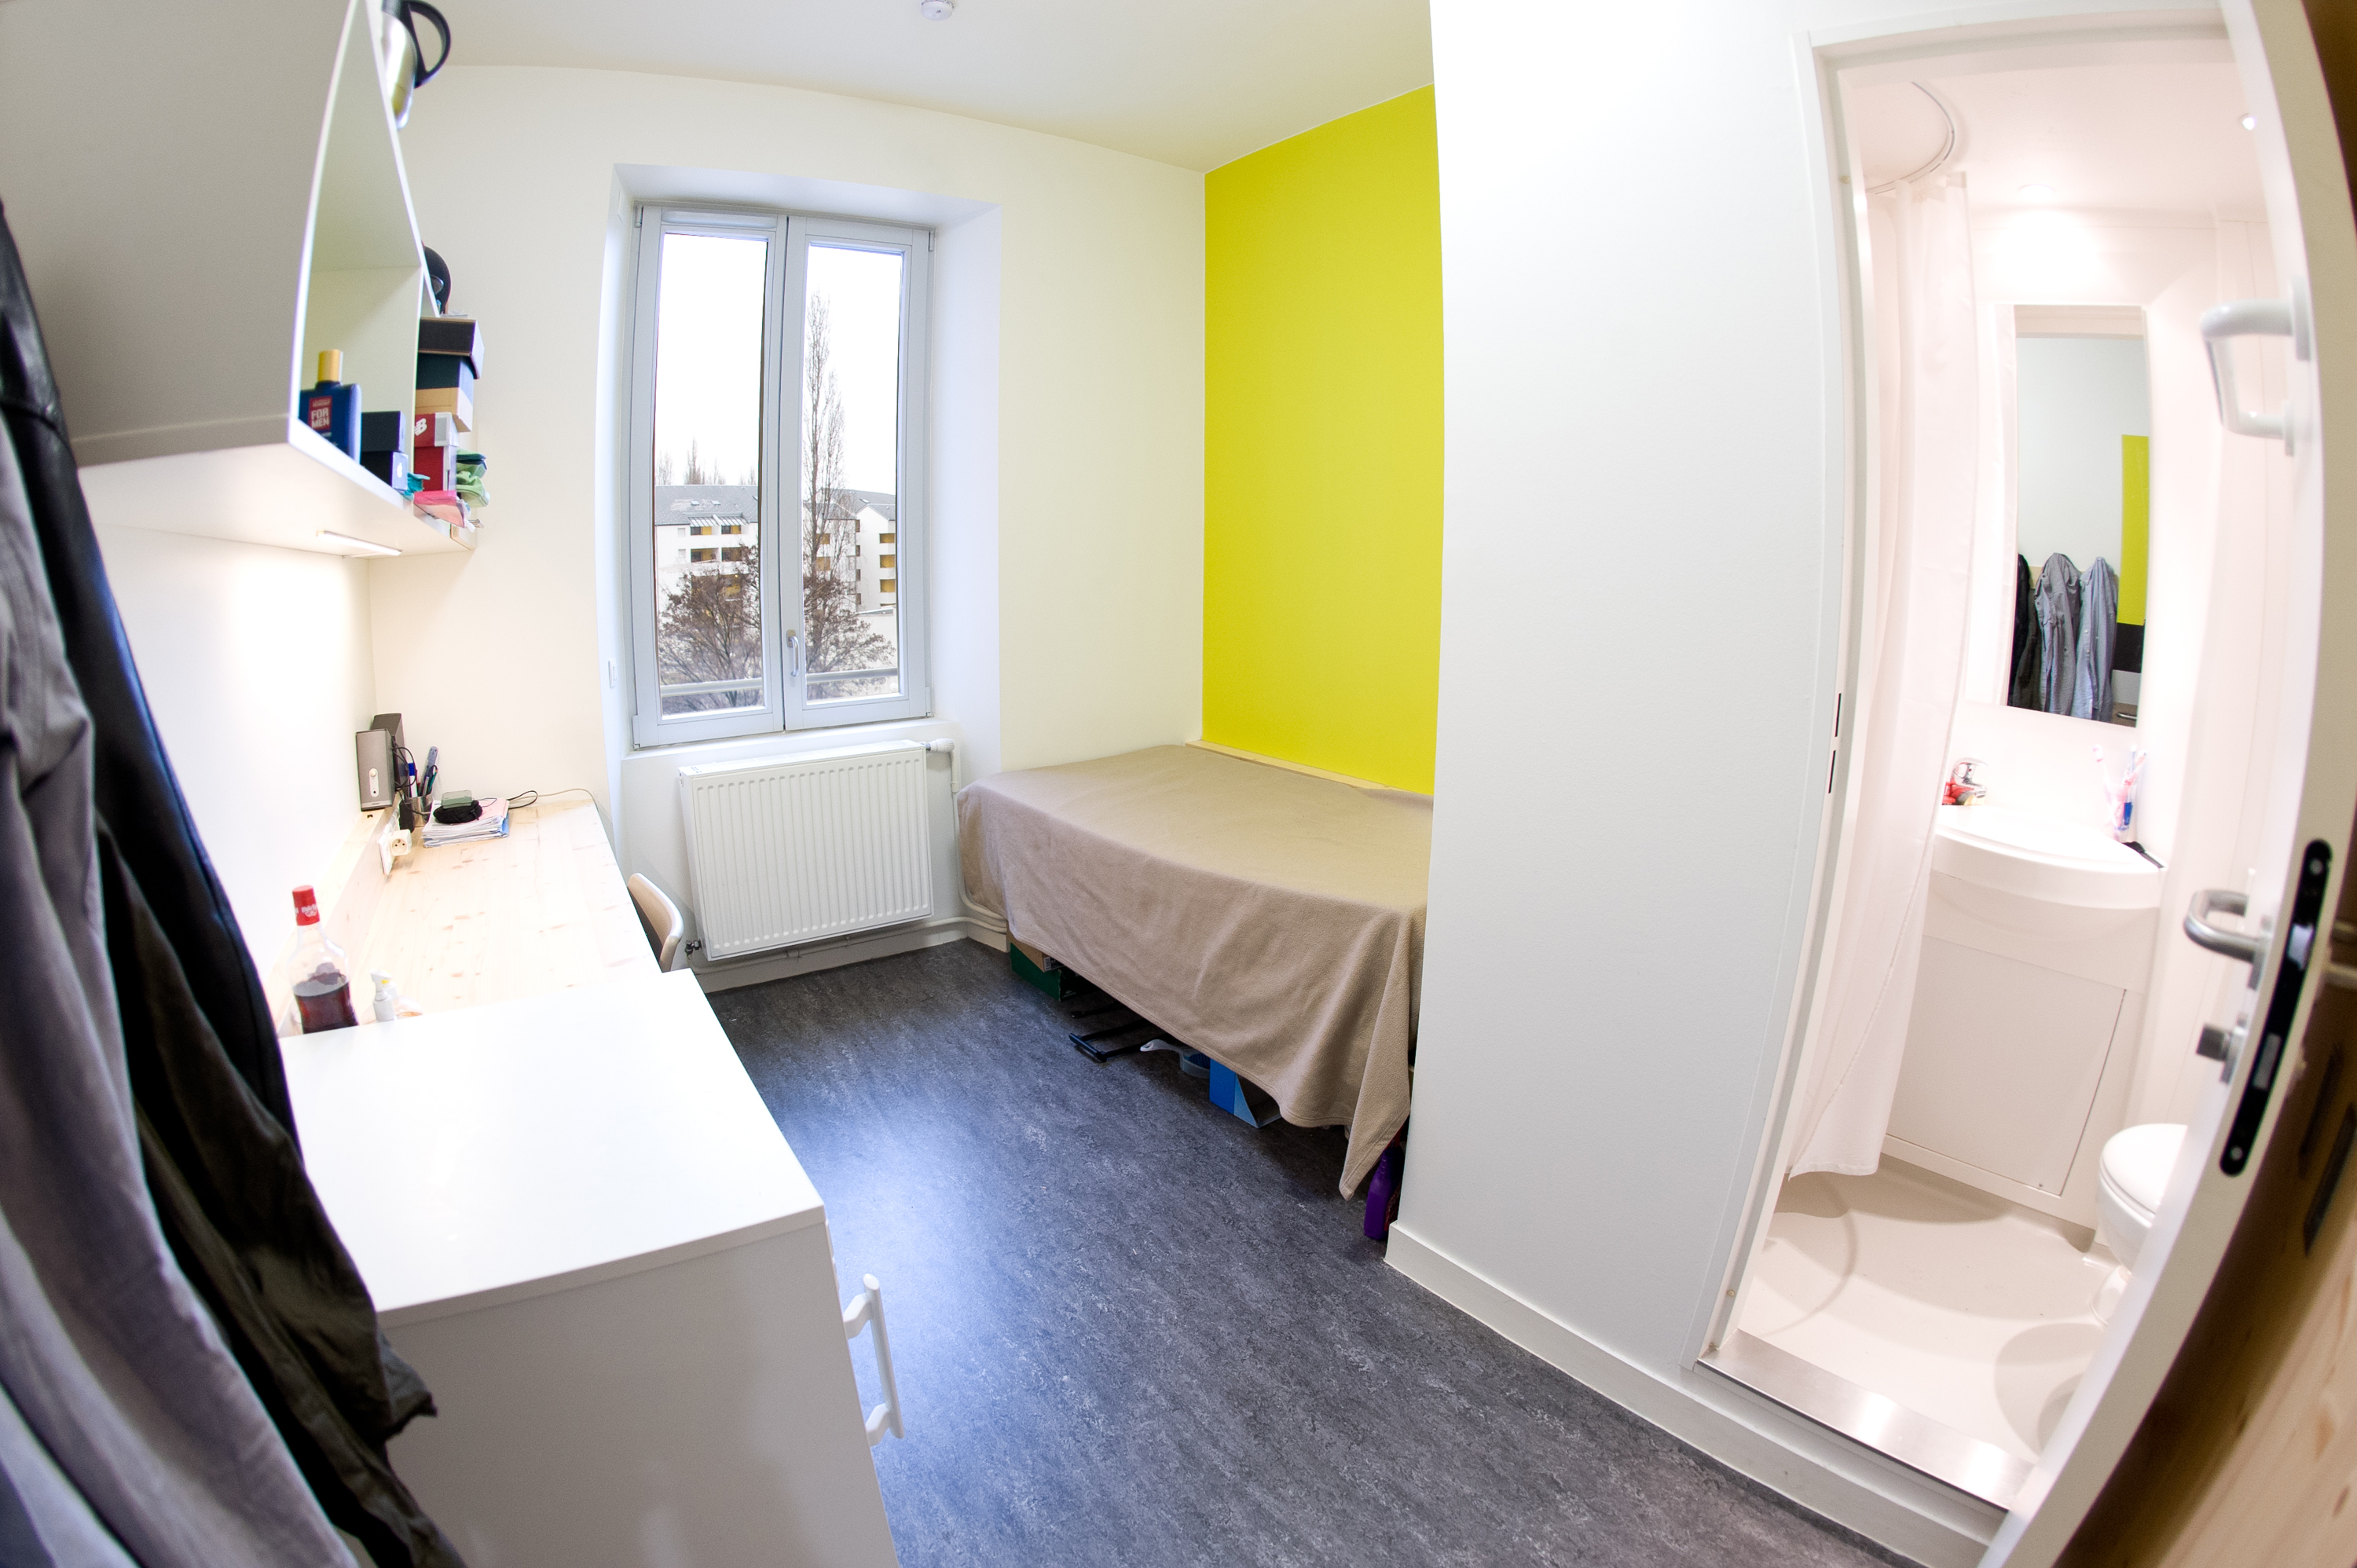 R sidence maison des etudiants crous grenoble alpes for Appartement universitaire bordeaux